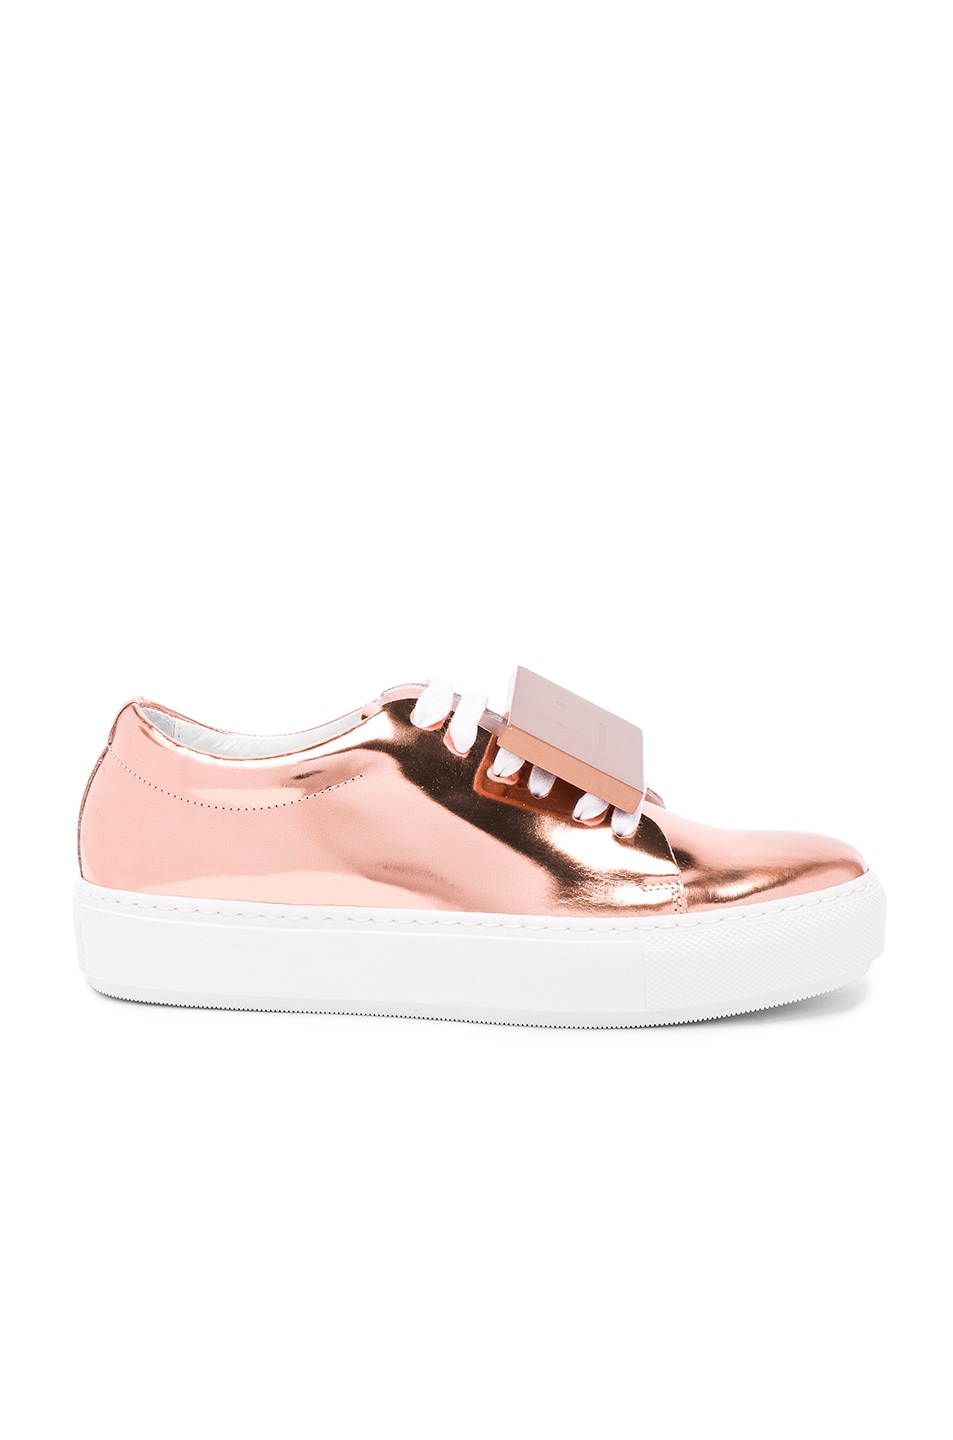 Image 2 of Acne Studios Adriana Metallic Leather Sneakers in Copper